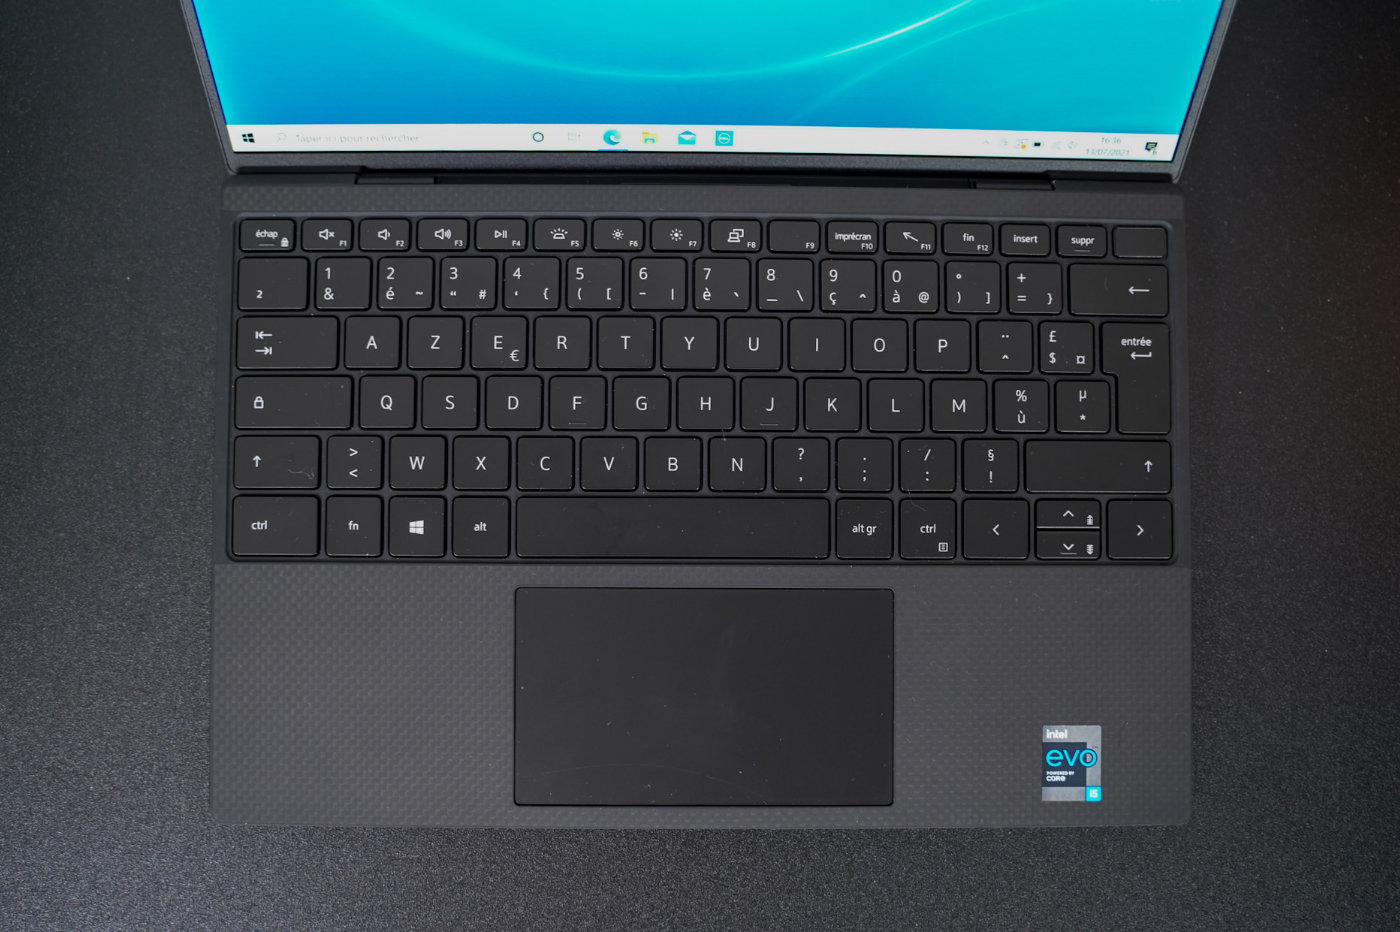 test dell ups 13 9310 clavier